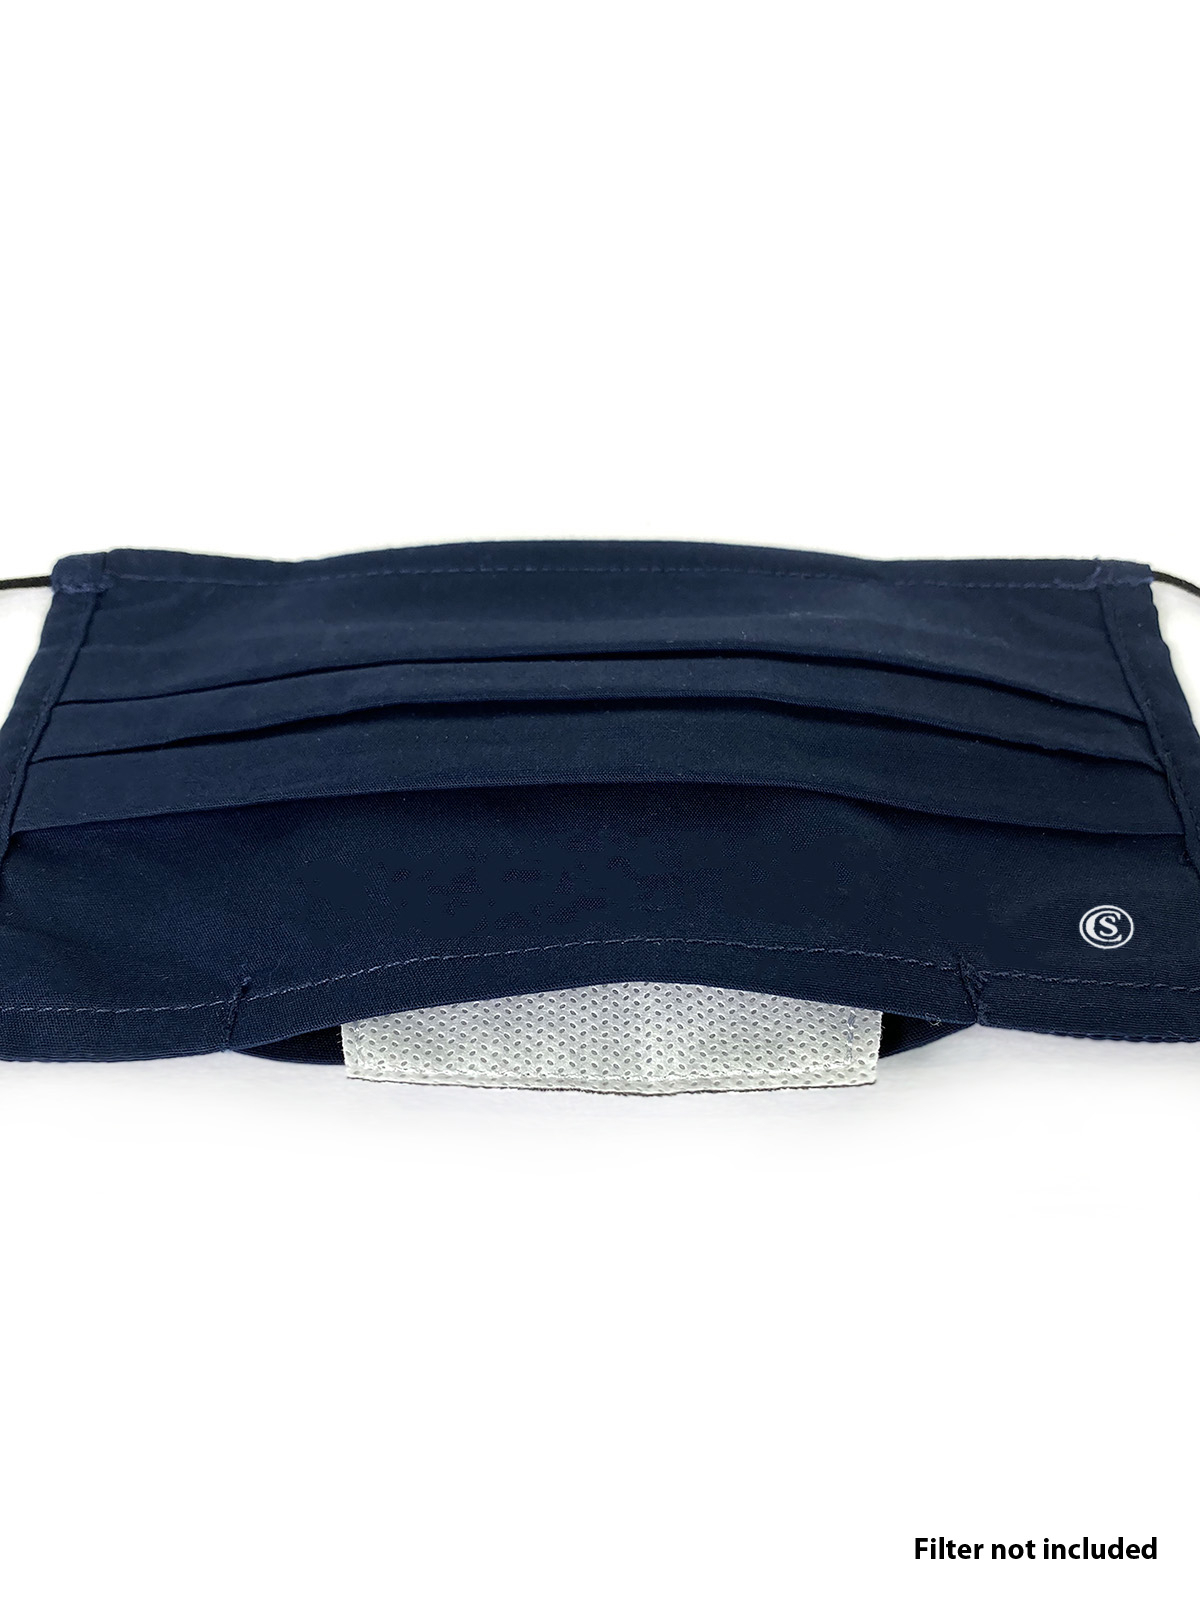 SOLID NAVY PLEATED MASK 6-PACK